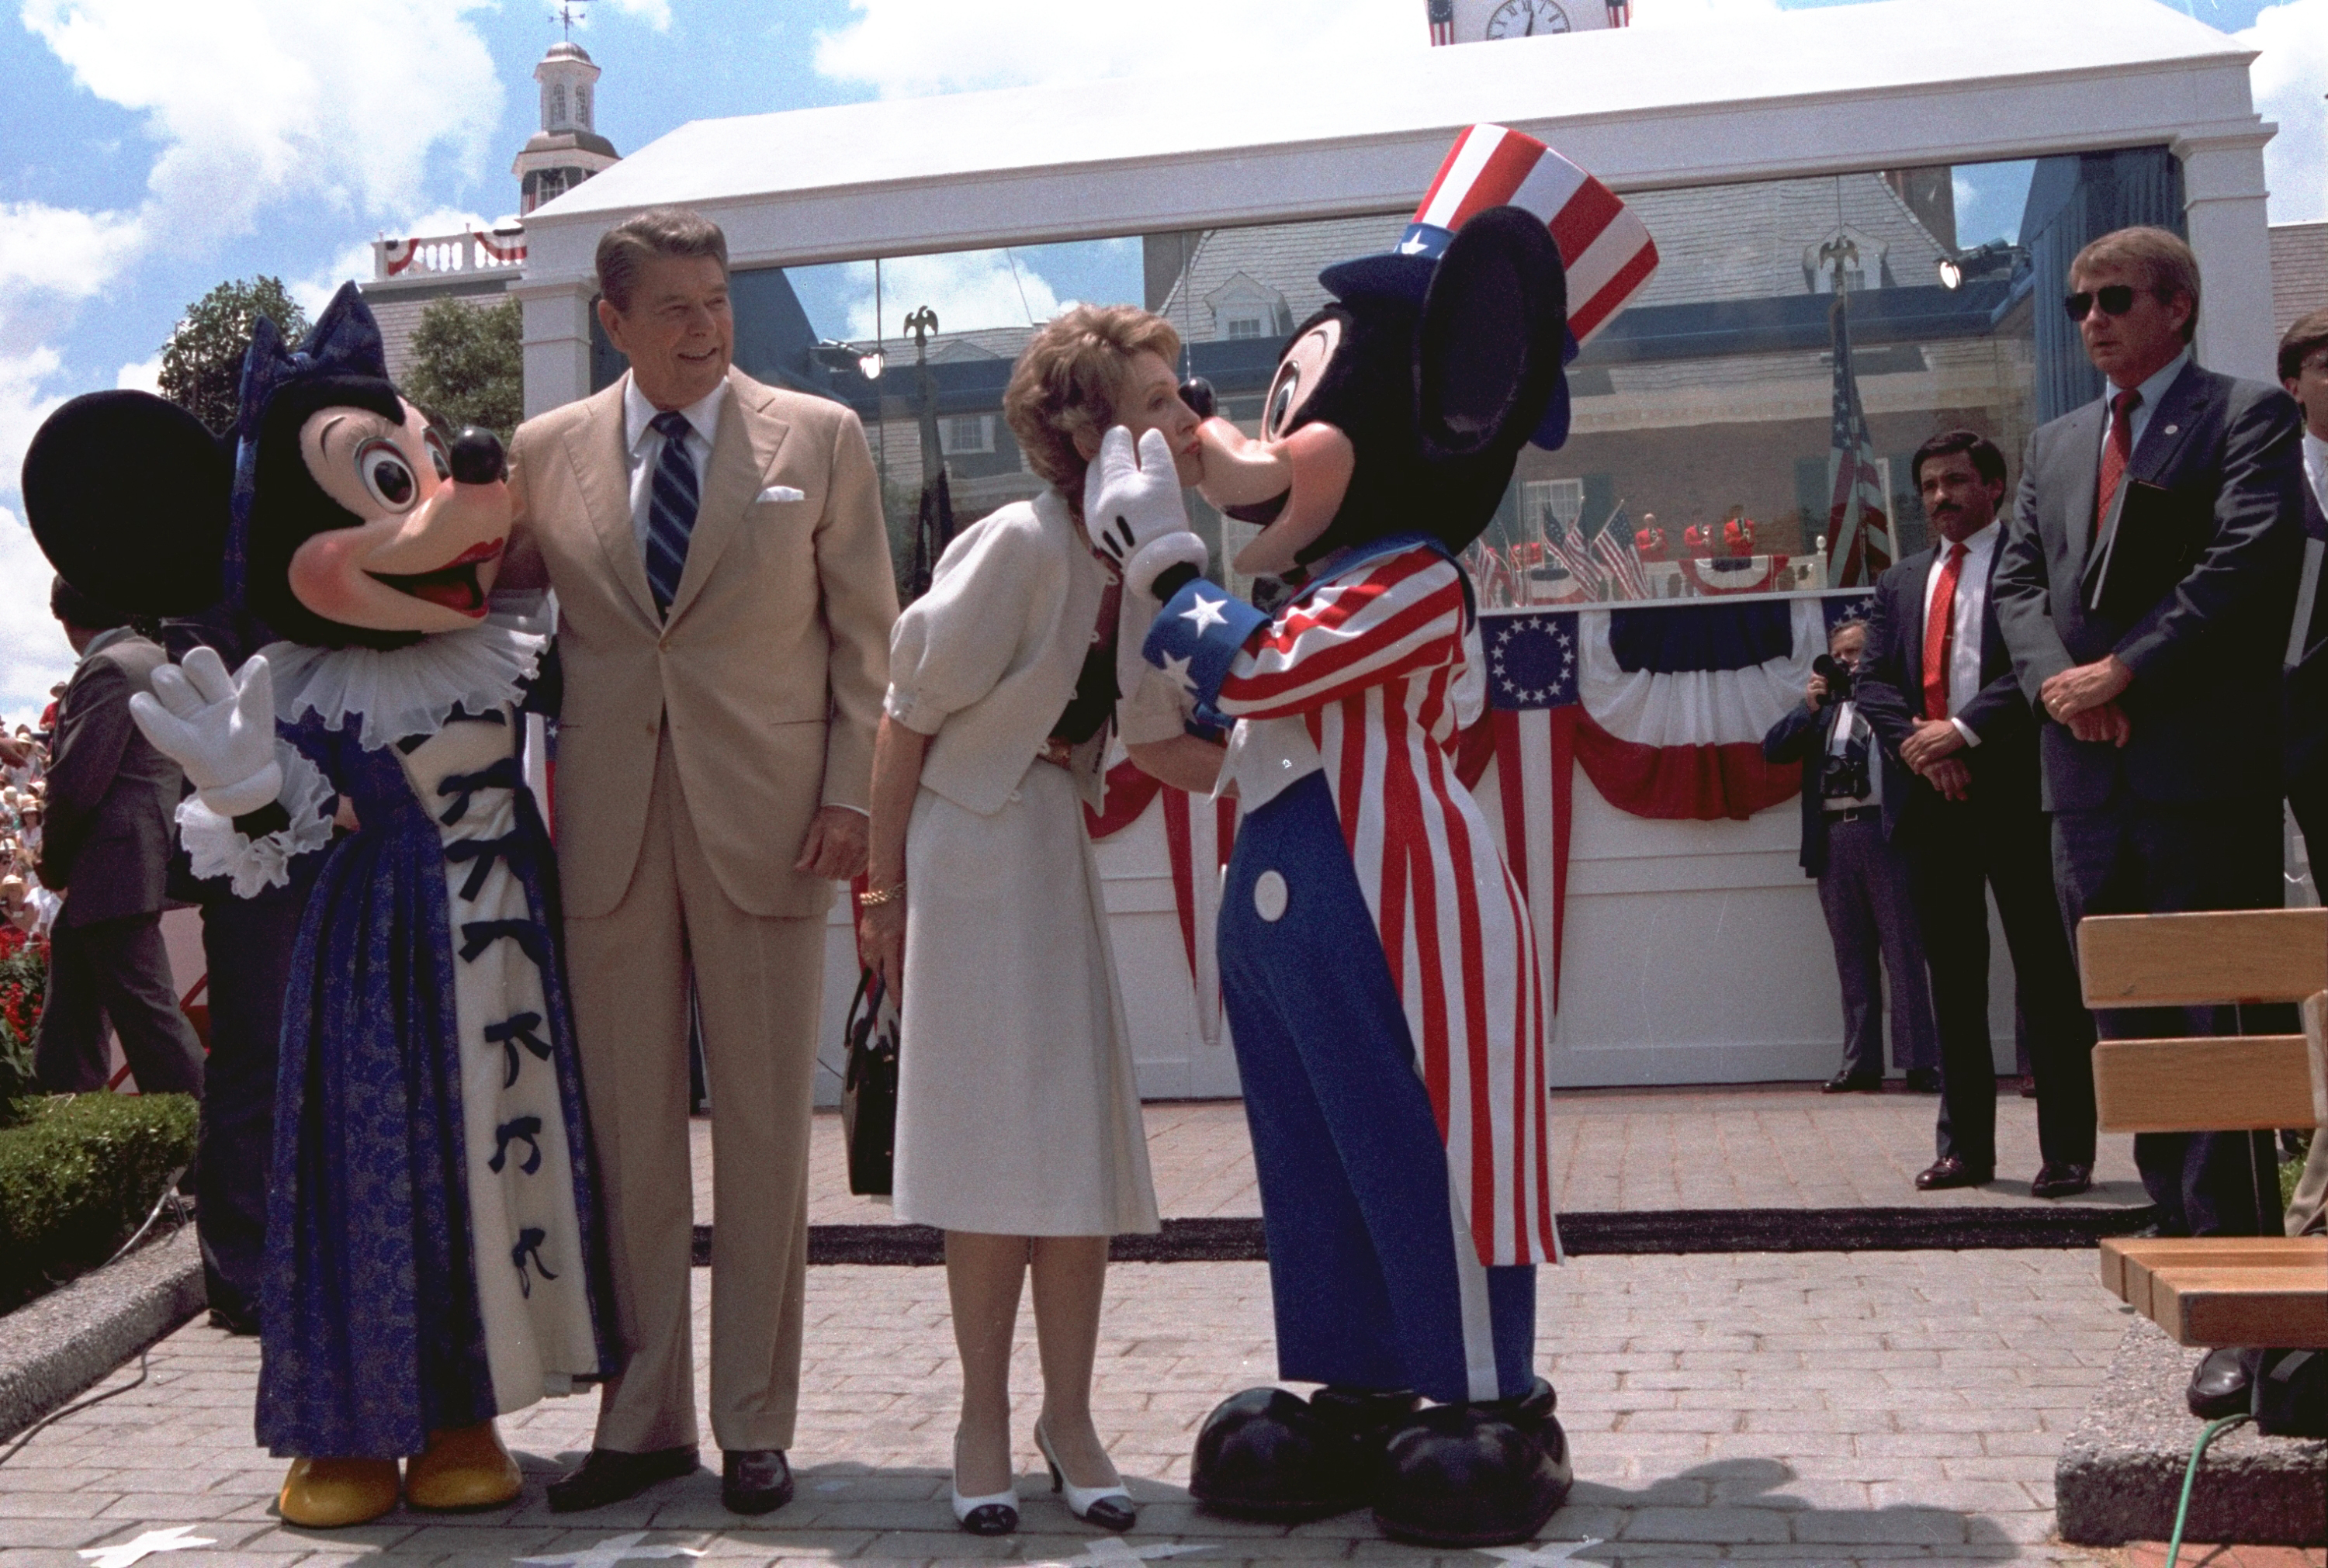 <div class='meta'><div class='origin-logo' data-origin='none'></div><span class='caption-text' data-credit='AP Photo/Scott Stewart'>President Reagan and Mrs. Nancy Reagan are shown embracing Minnie Mouse and Mickey Mouse at the Epcot Center in Walt Disney World, in Orlando, Florida, on May 27, 1985.</span></div>